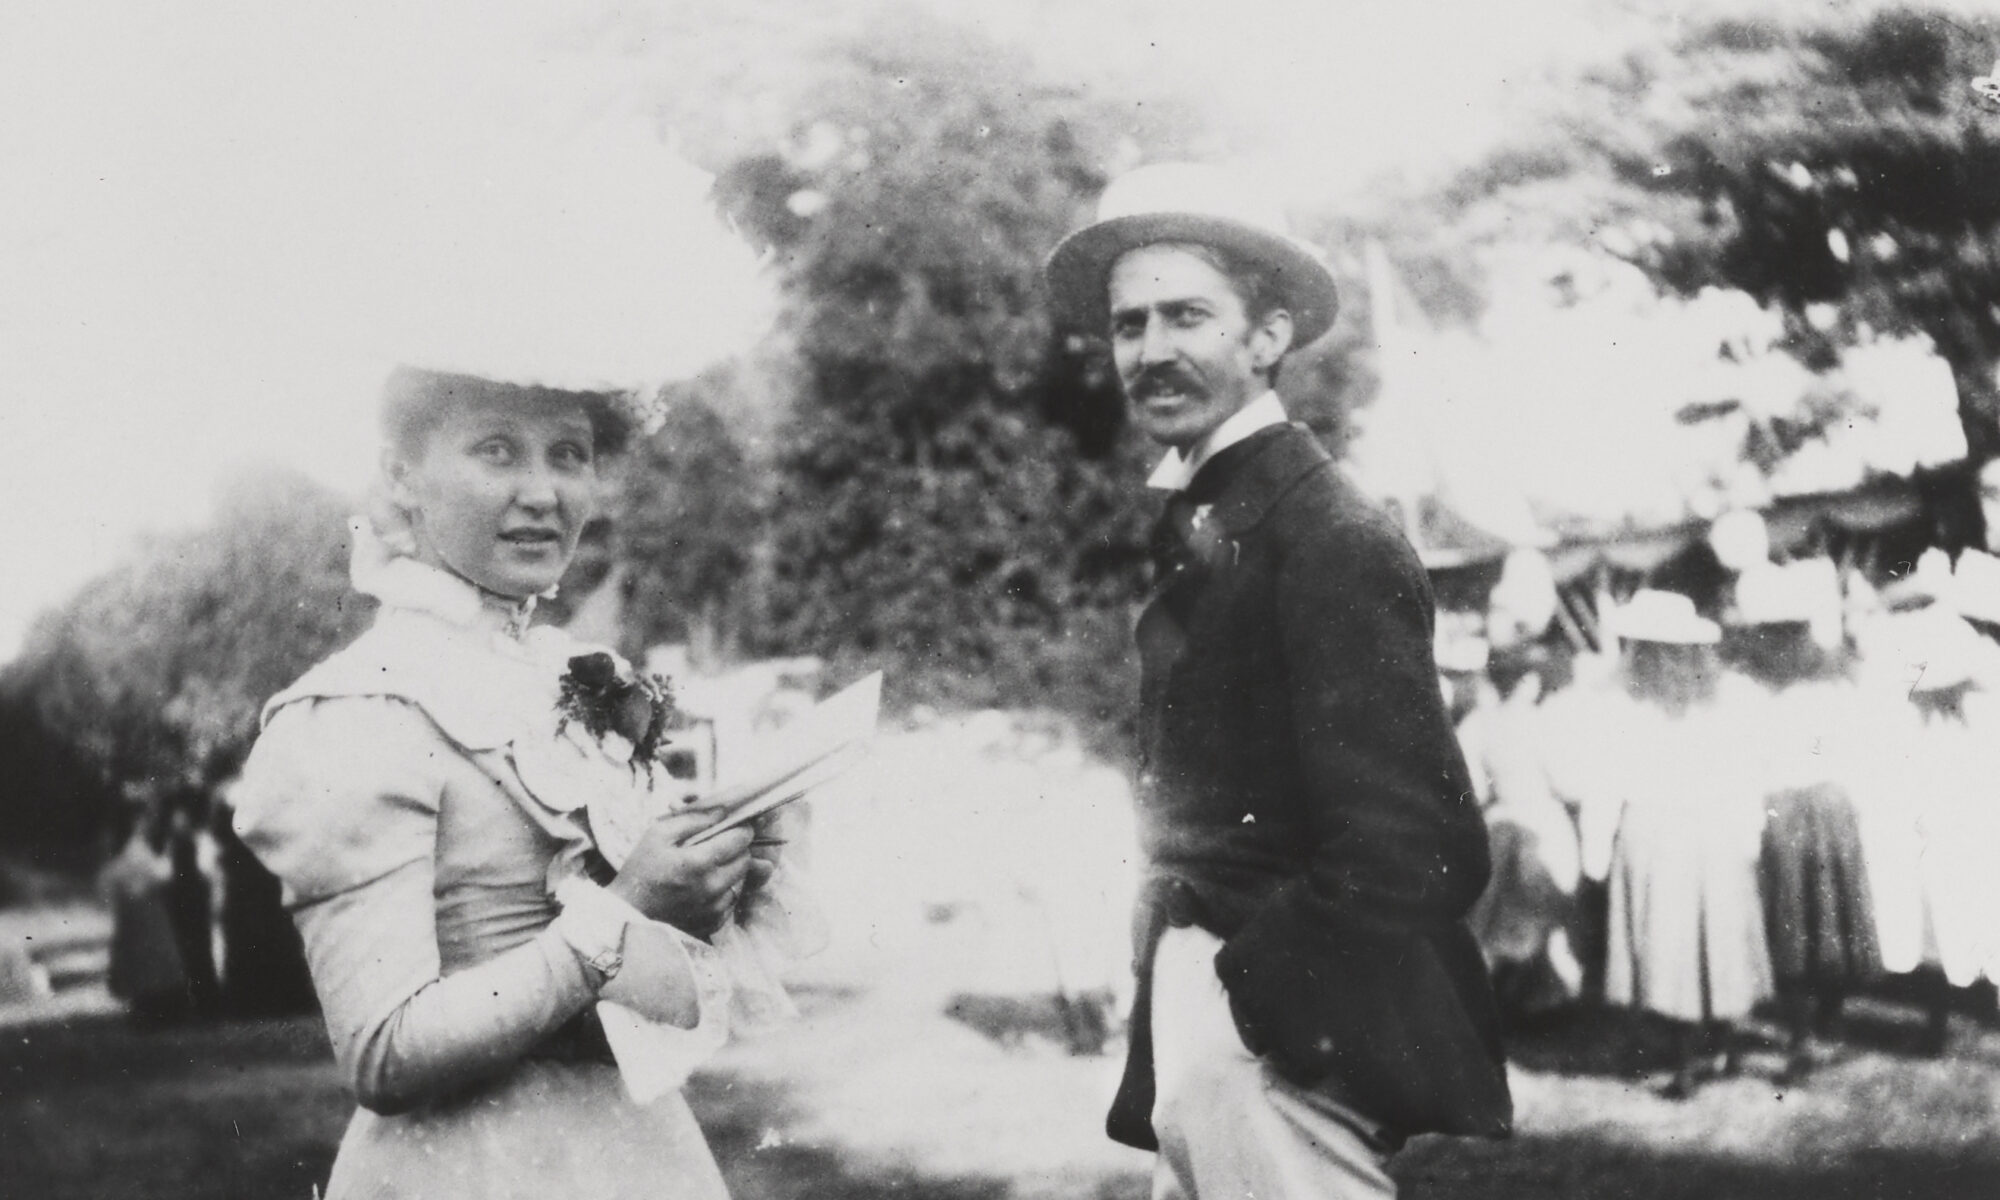 Black and white photo of early 20th century man and woman